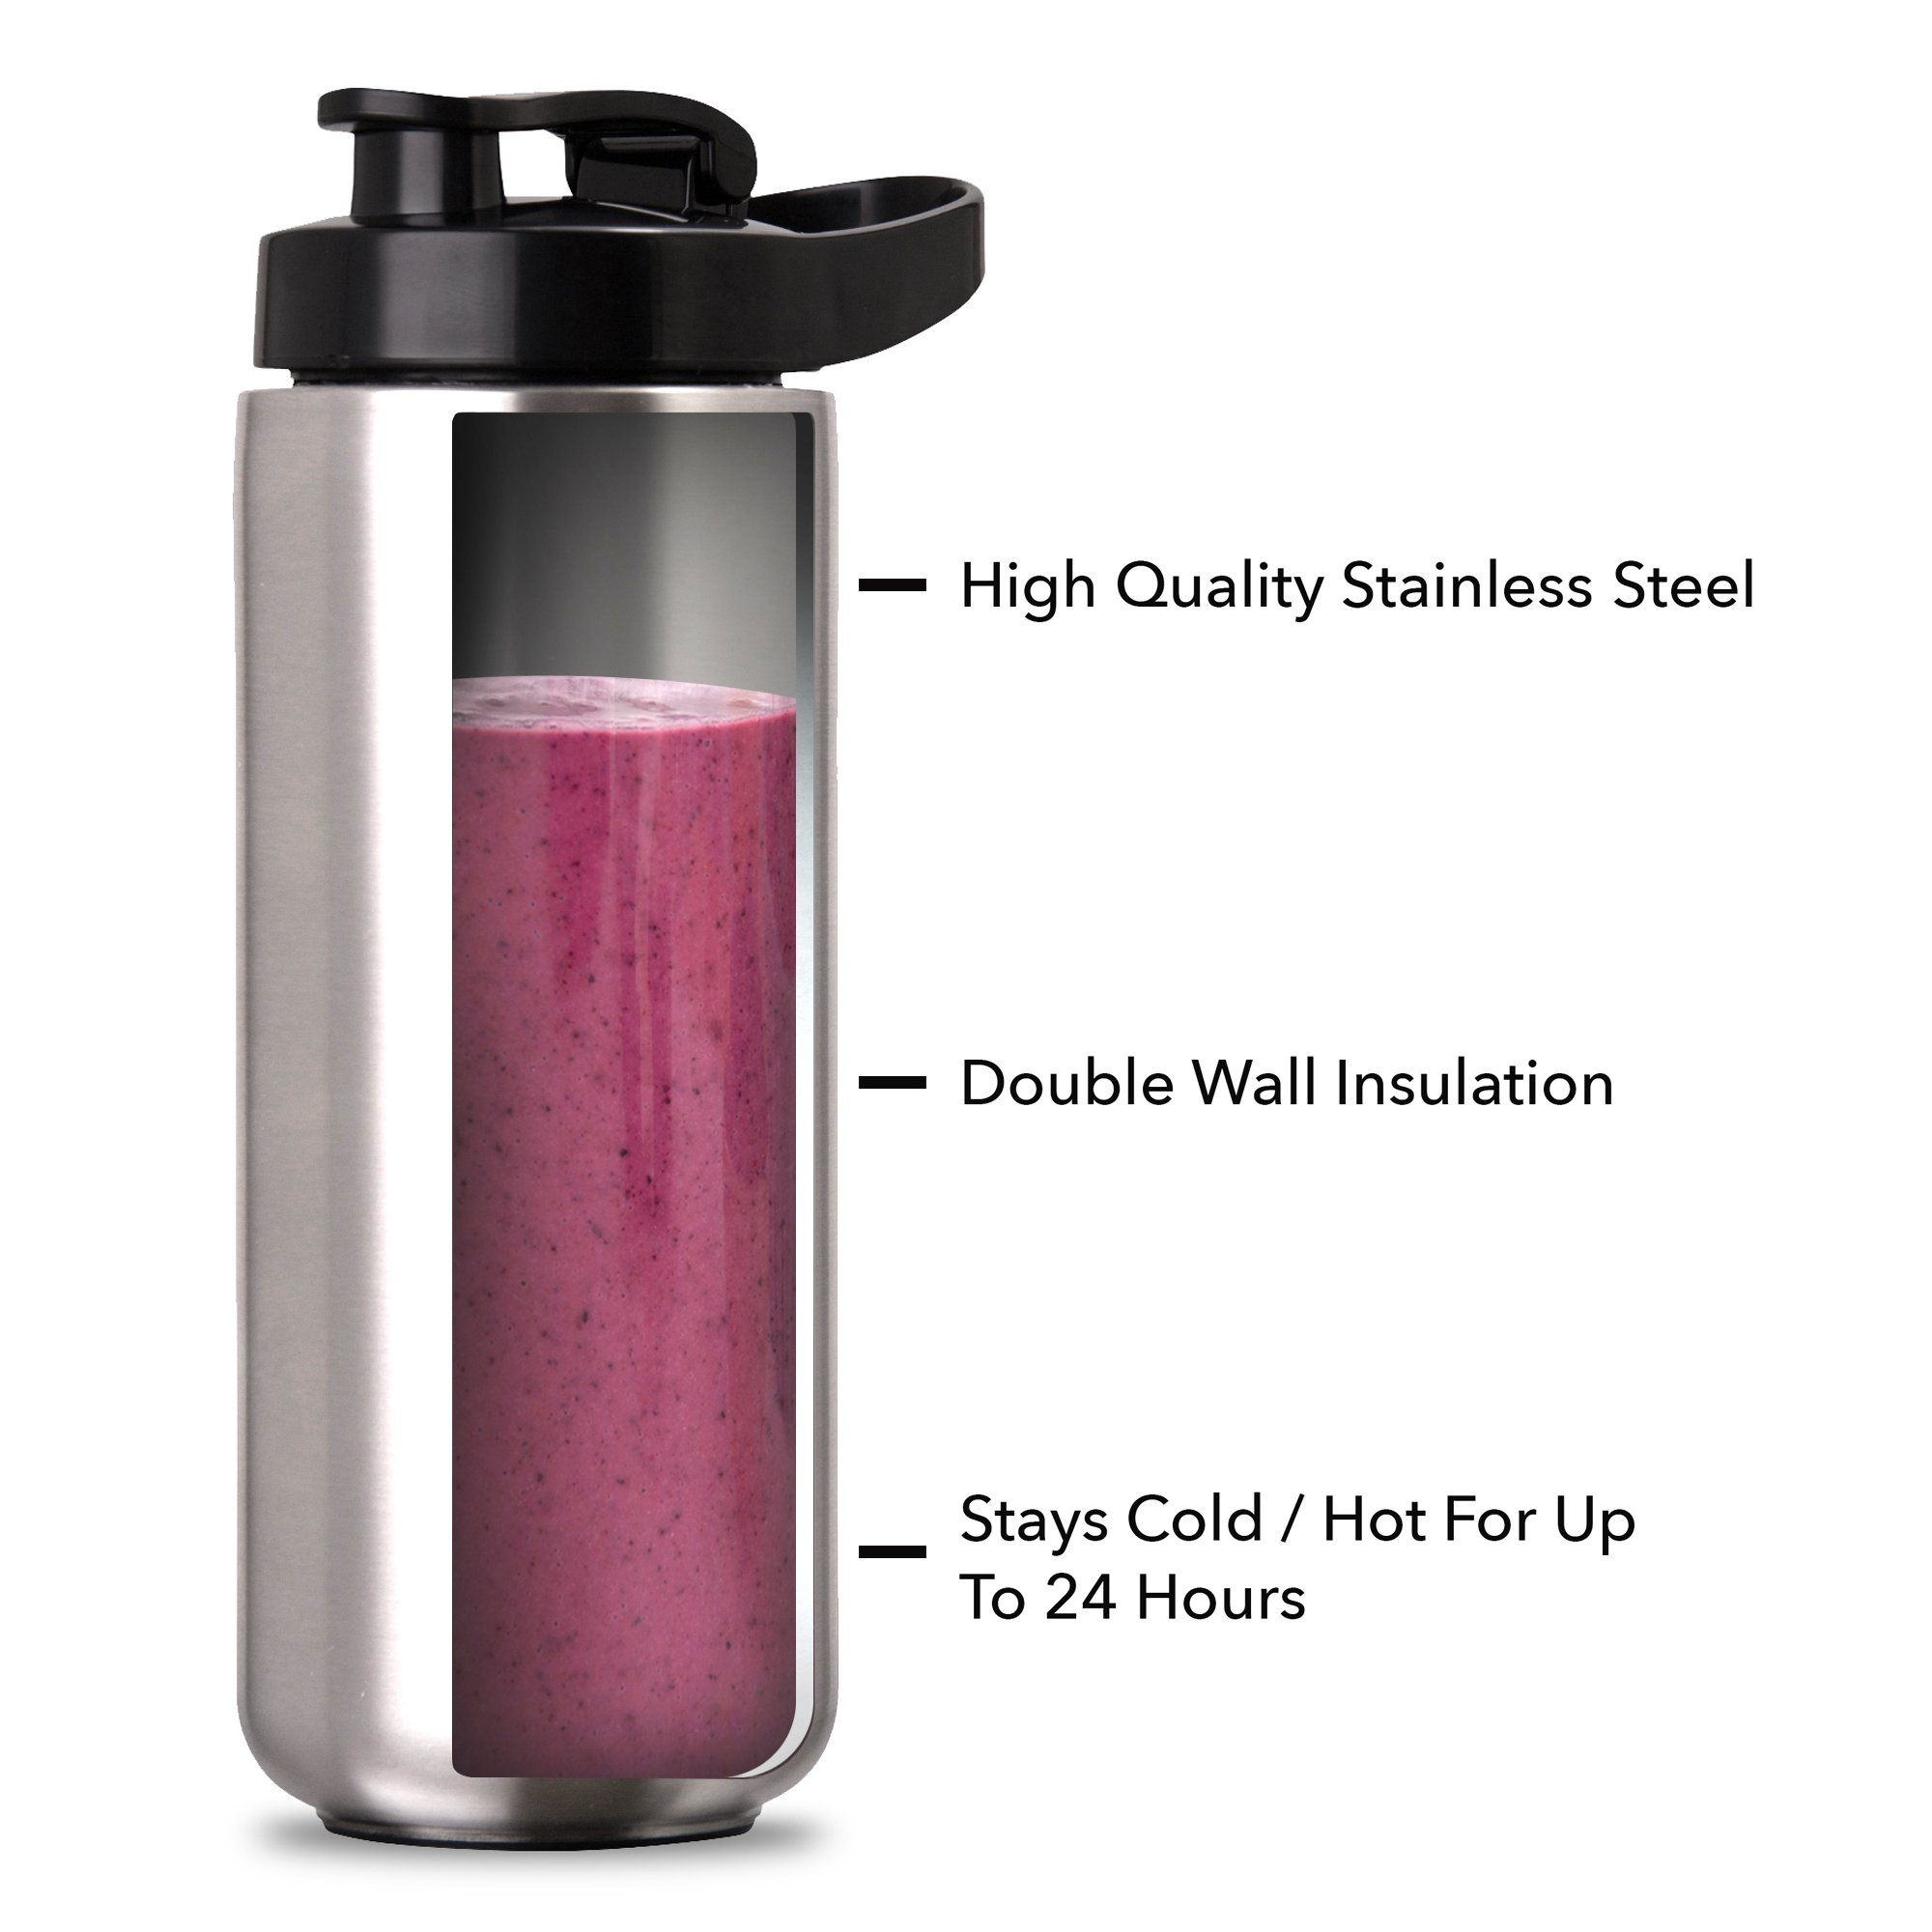 Dash Arctic Chill Blender: The Compact Personal Blender with Insulated Stainless-Steel Tumbler 16 oz + Travel Lid for Coffee Drinks, Frozen Cocktails, Smoothies by Dash (Image #3)